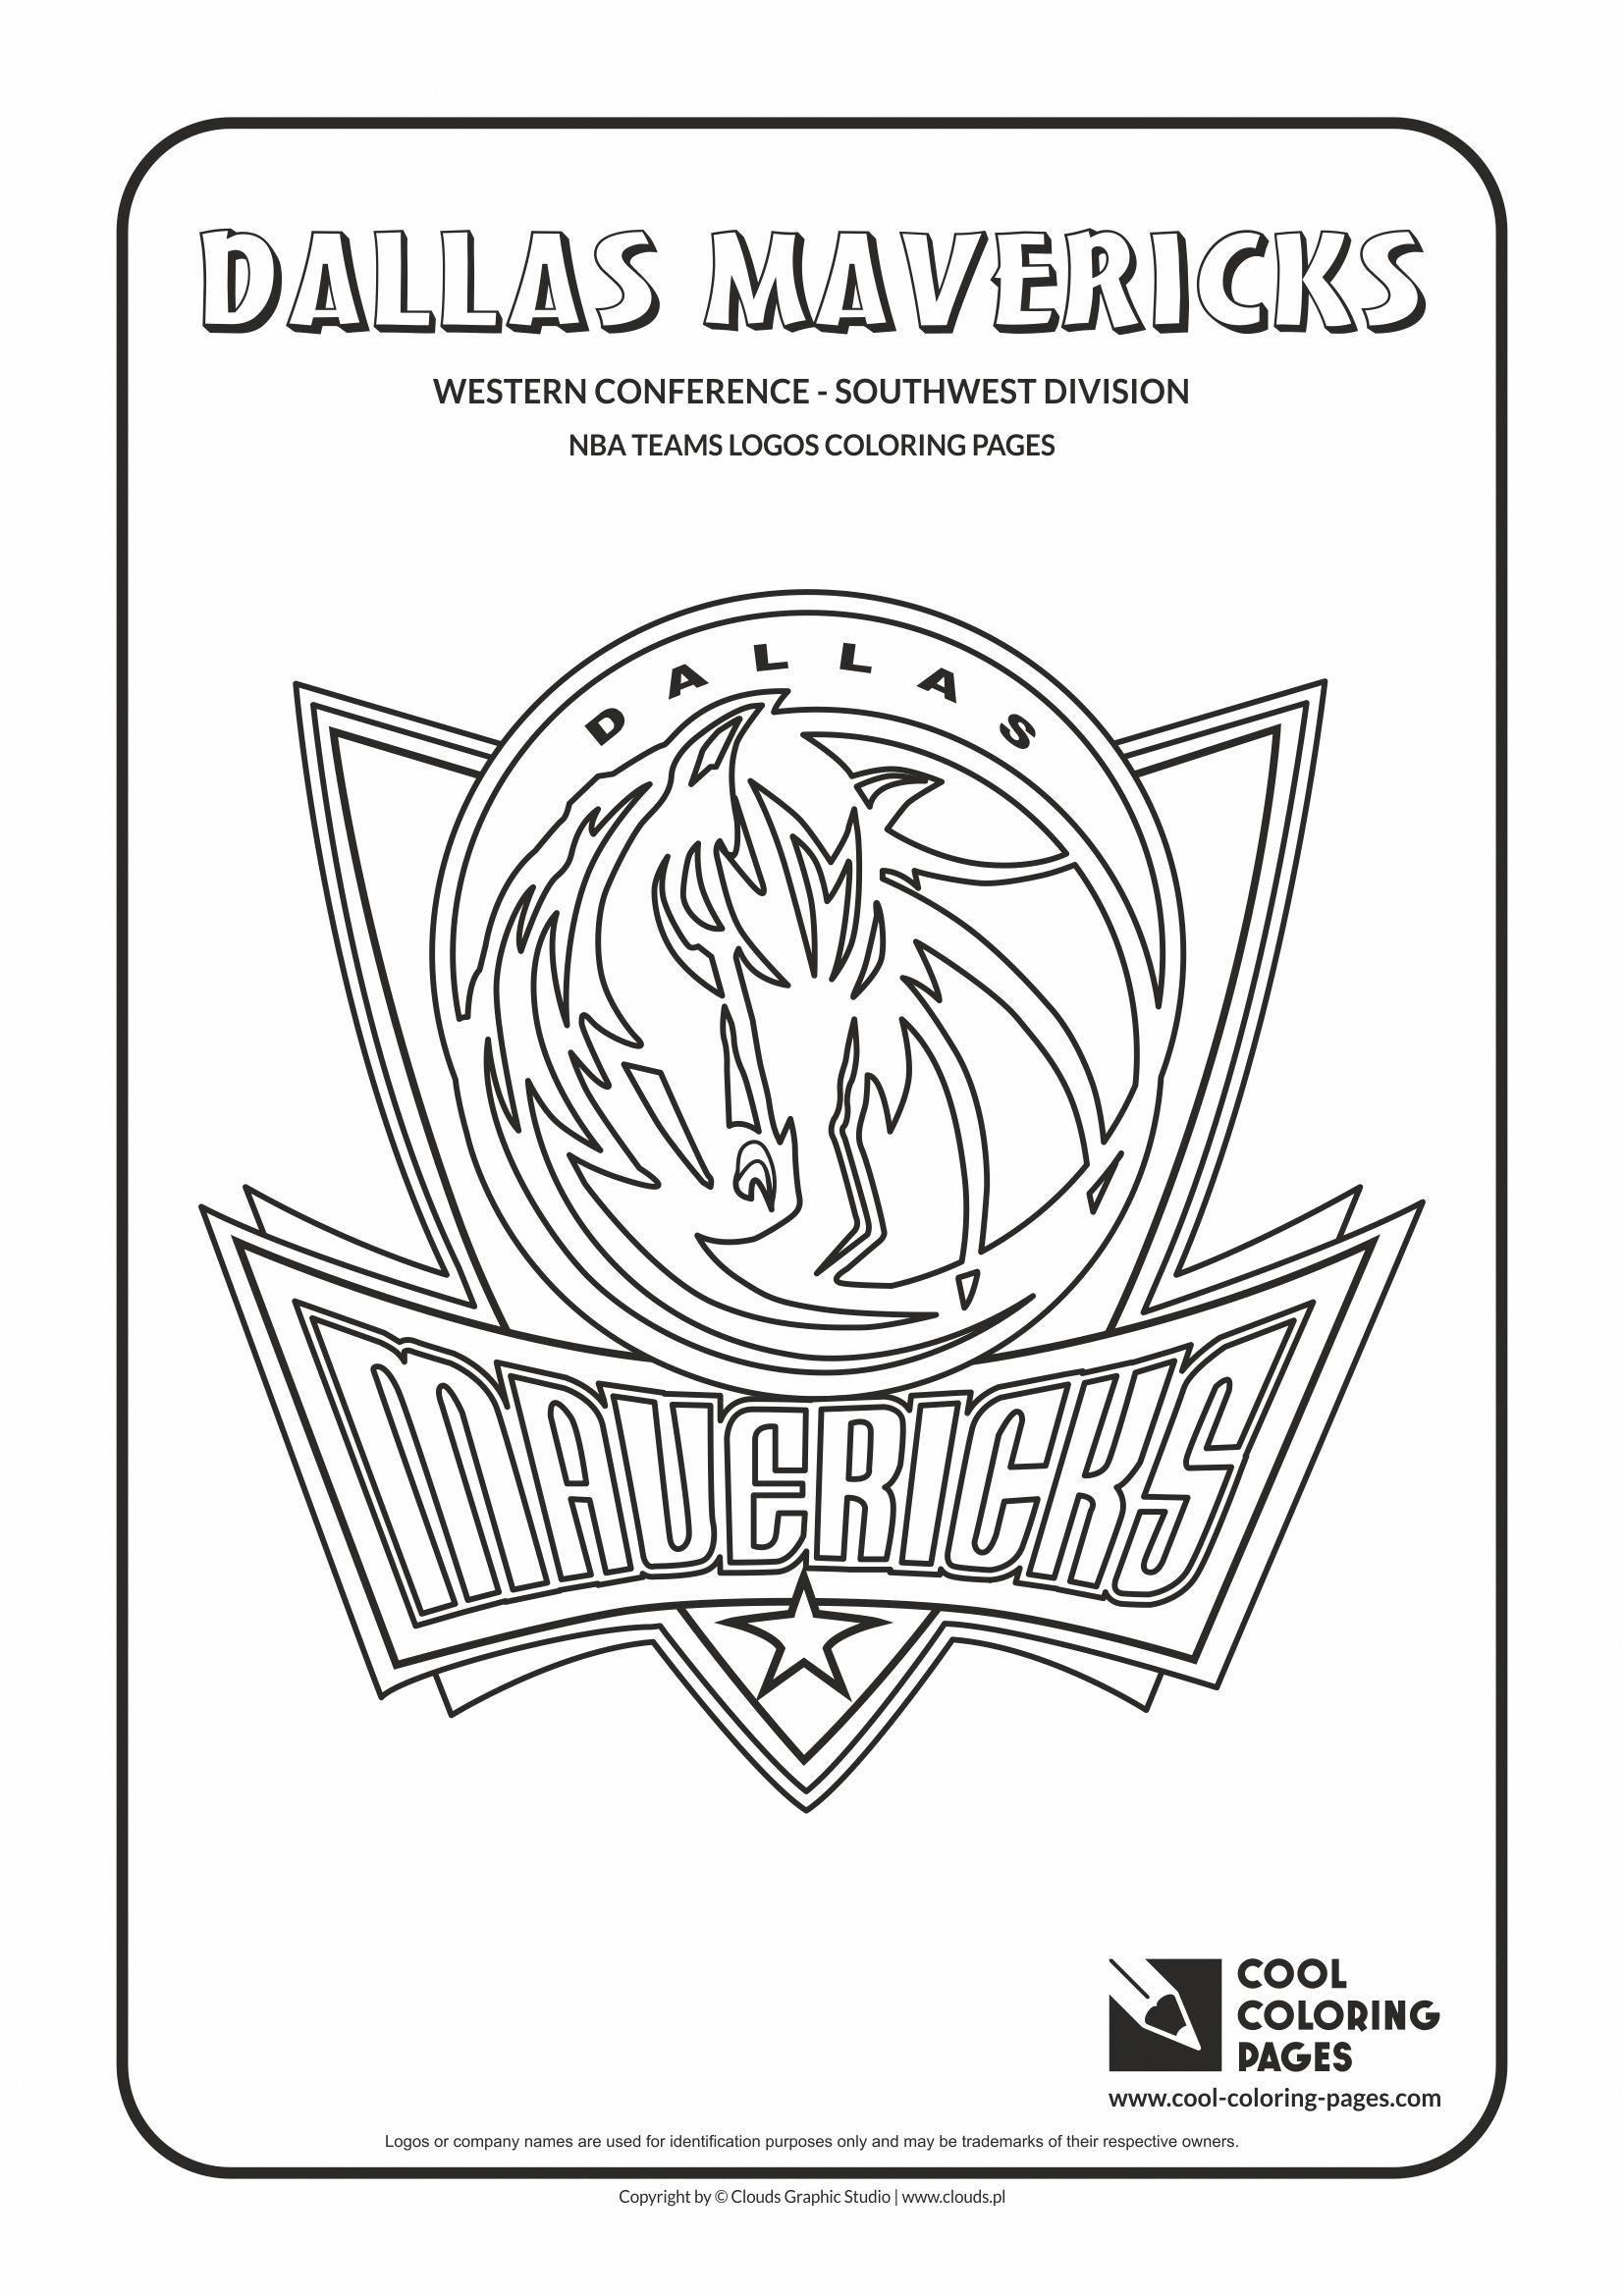 Dallas Mavericks Nba Basketball Teams Logos Coloring Pages Nba